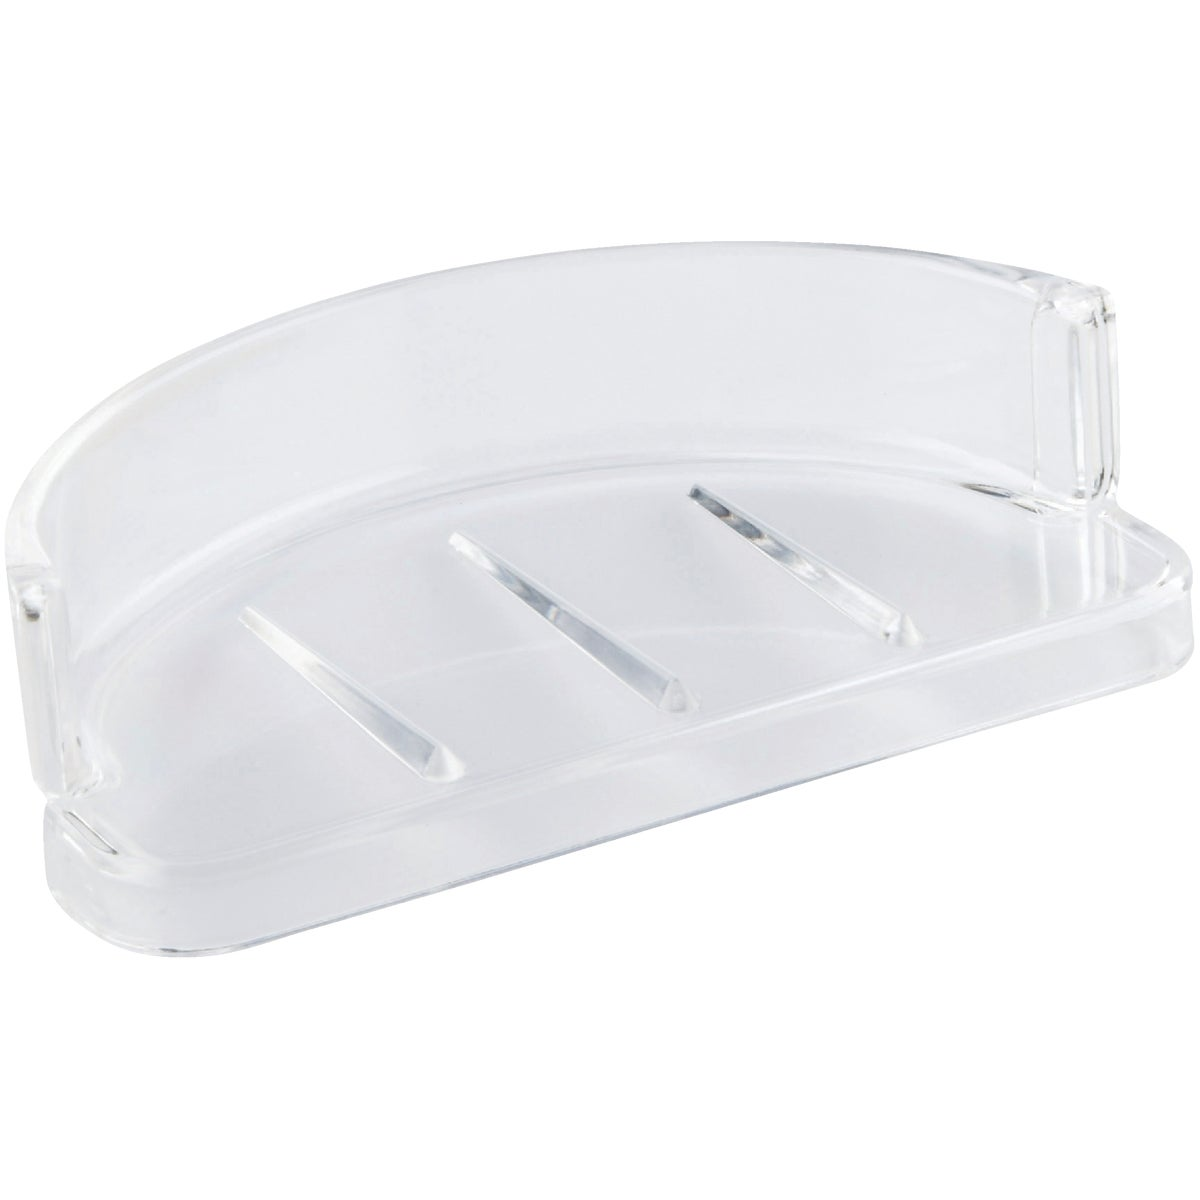 RPLCMENT SOAP DISH